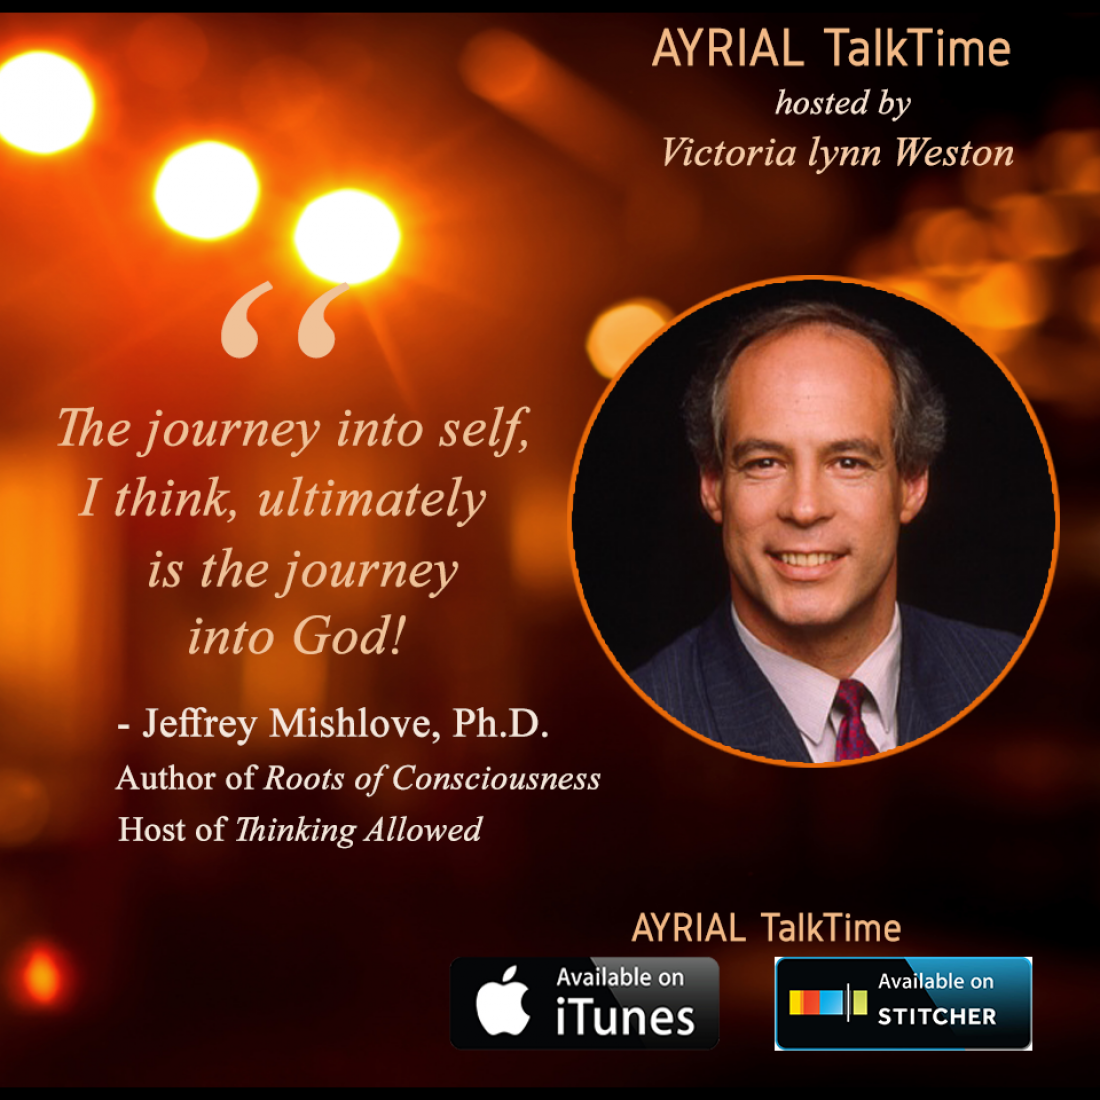 Parapsychologist & Host of Thinking Allowed Jeffrey Mishlove is Featured on AYRIAL TalkTime